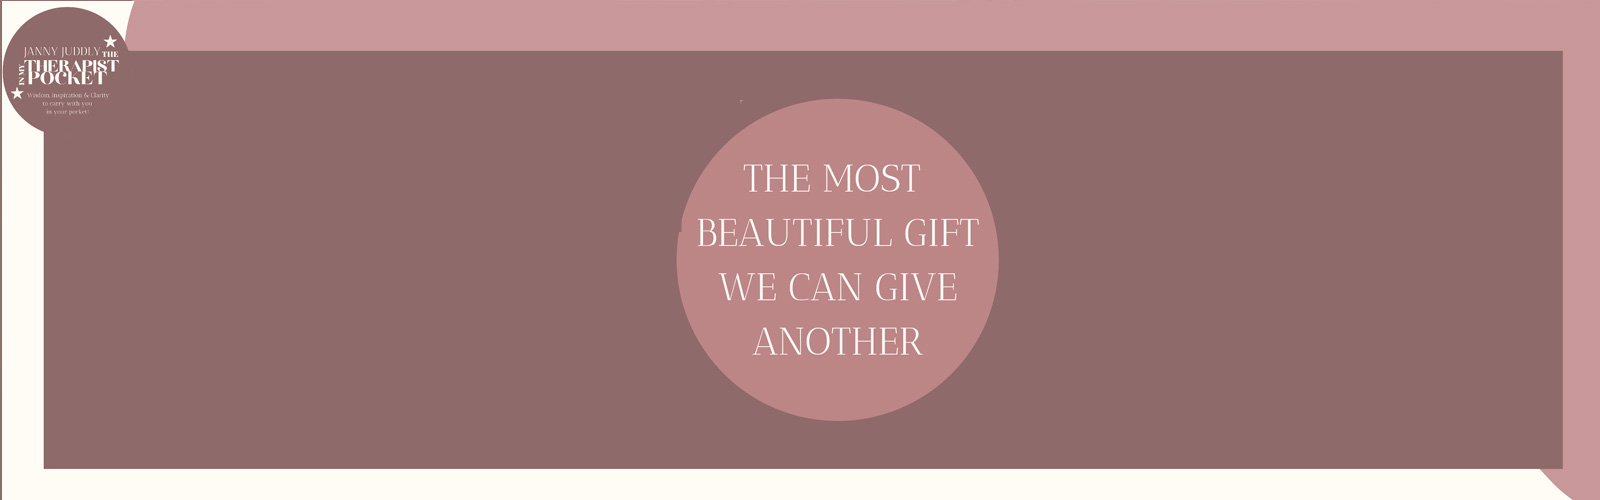 THE MOST BEAUTIFUL GIFT WE CAN GIVE ANOTHER